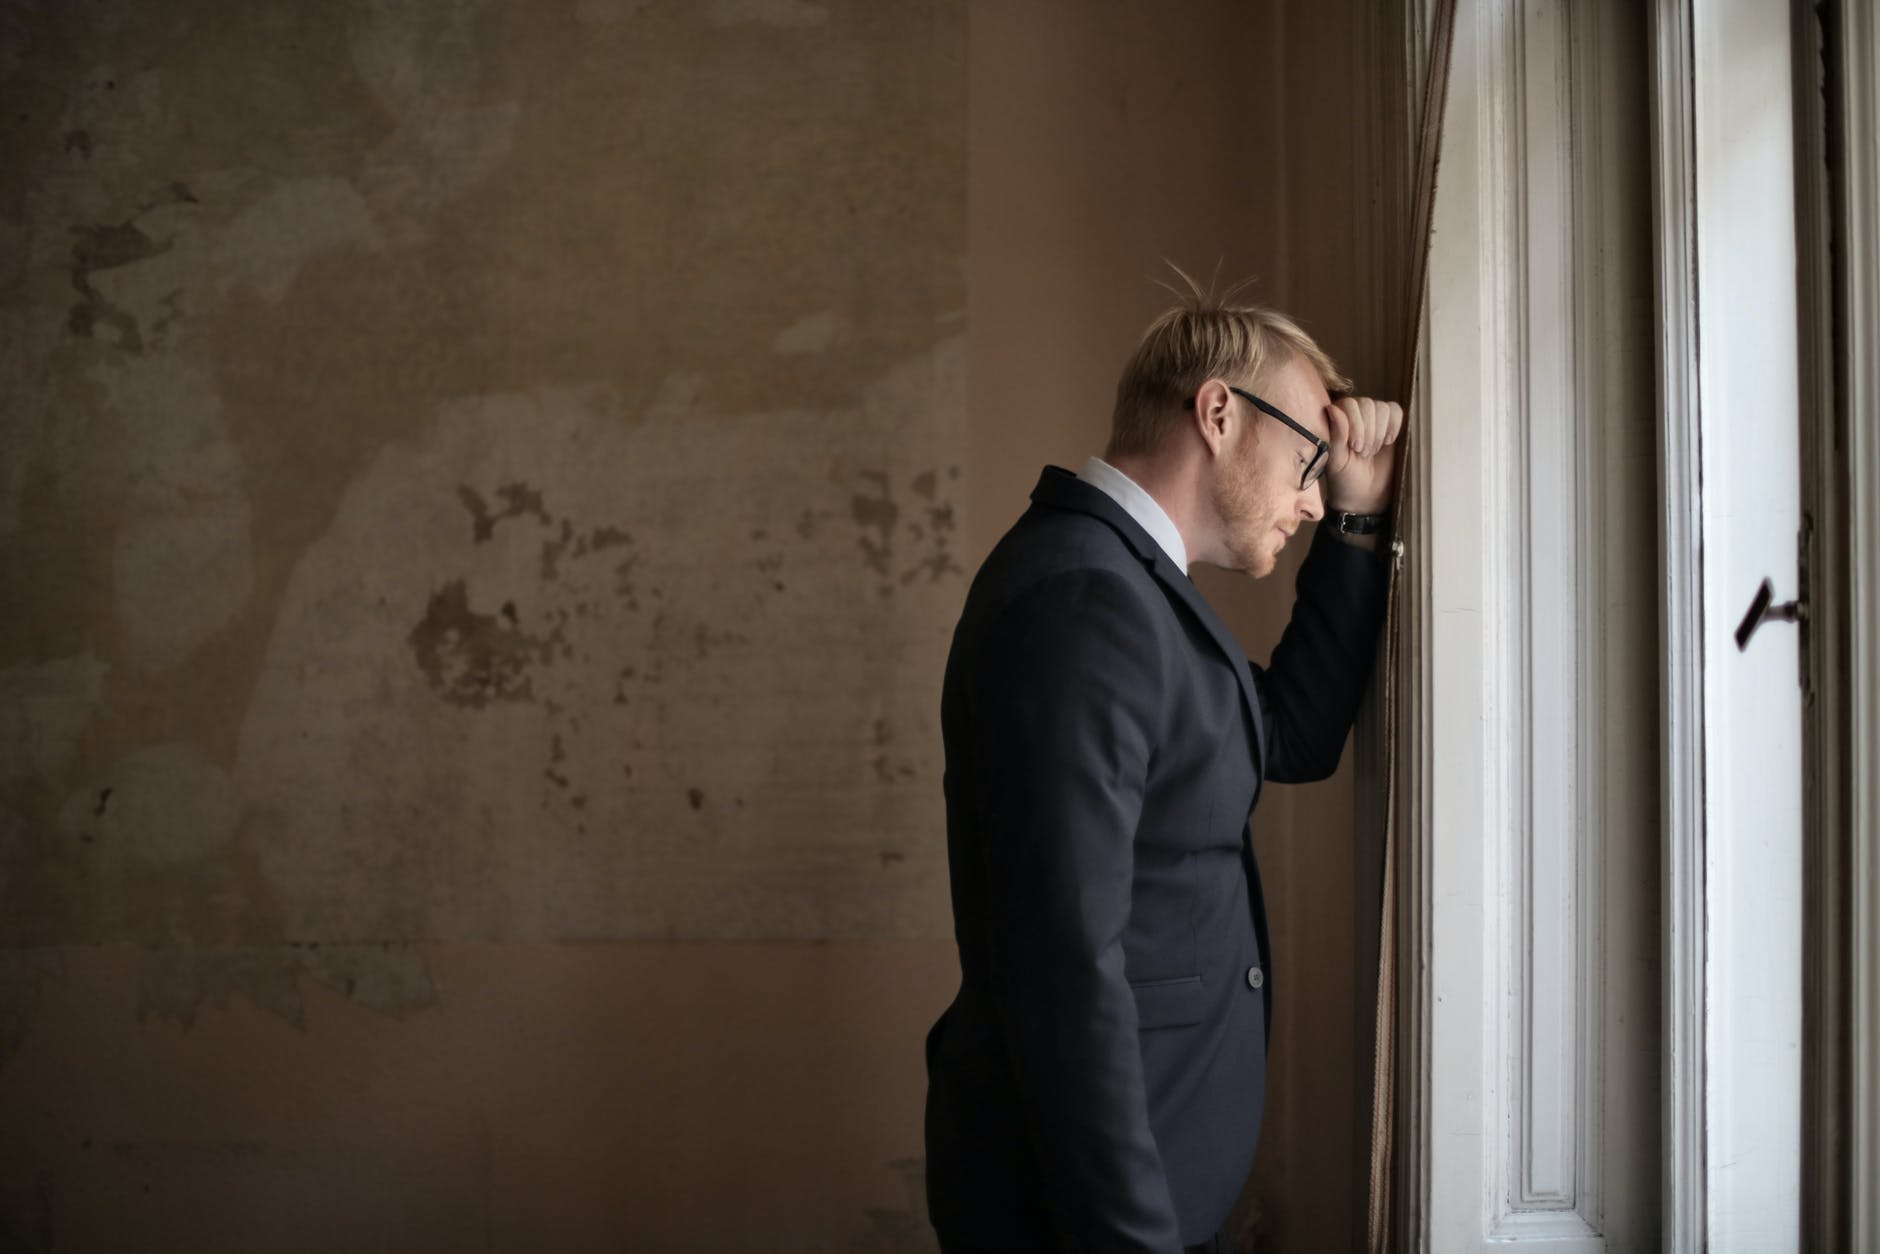 desperate evicted male entrepreneur standing near window